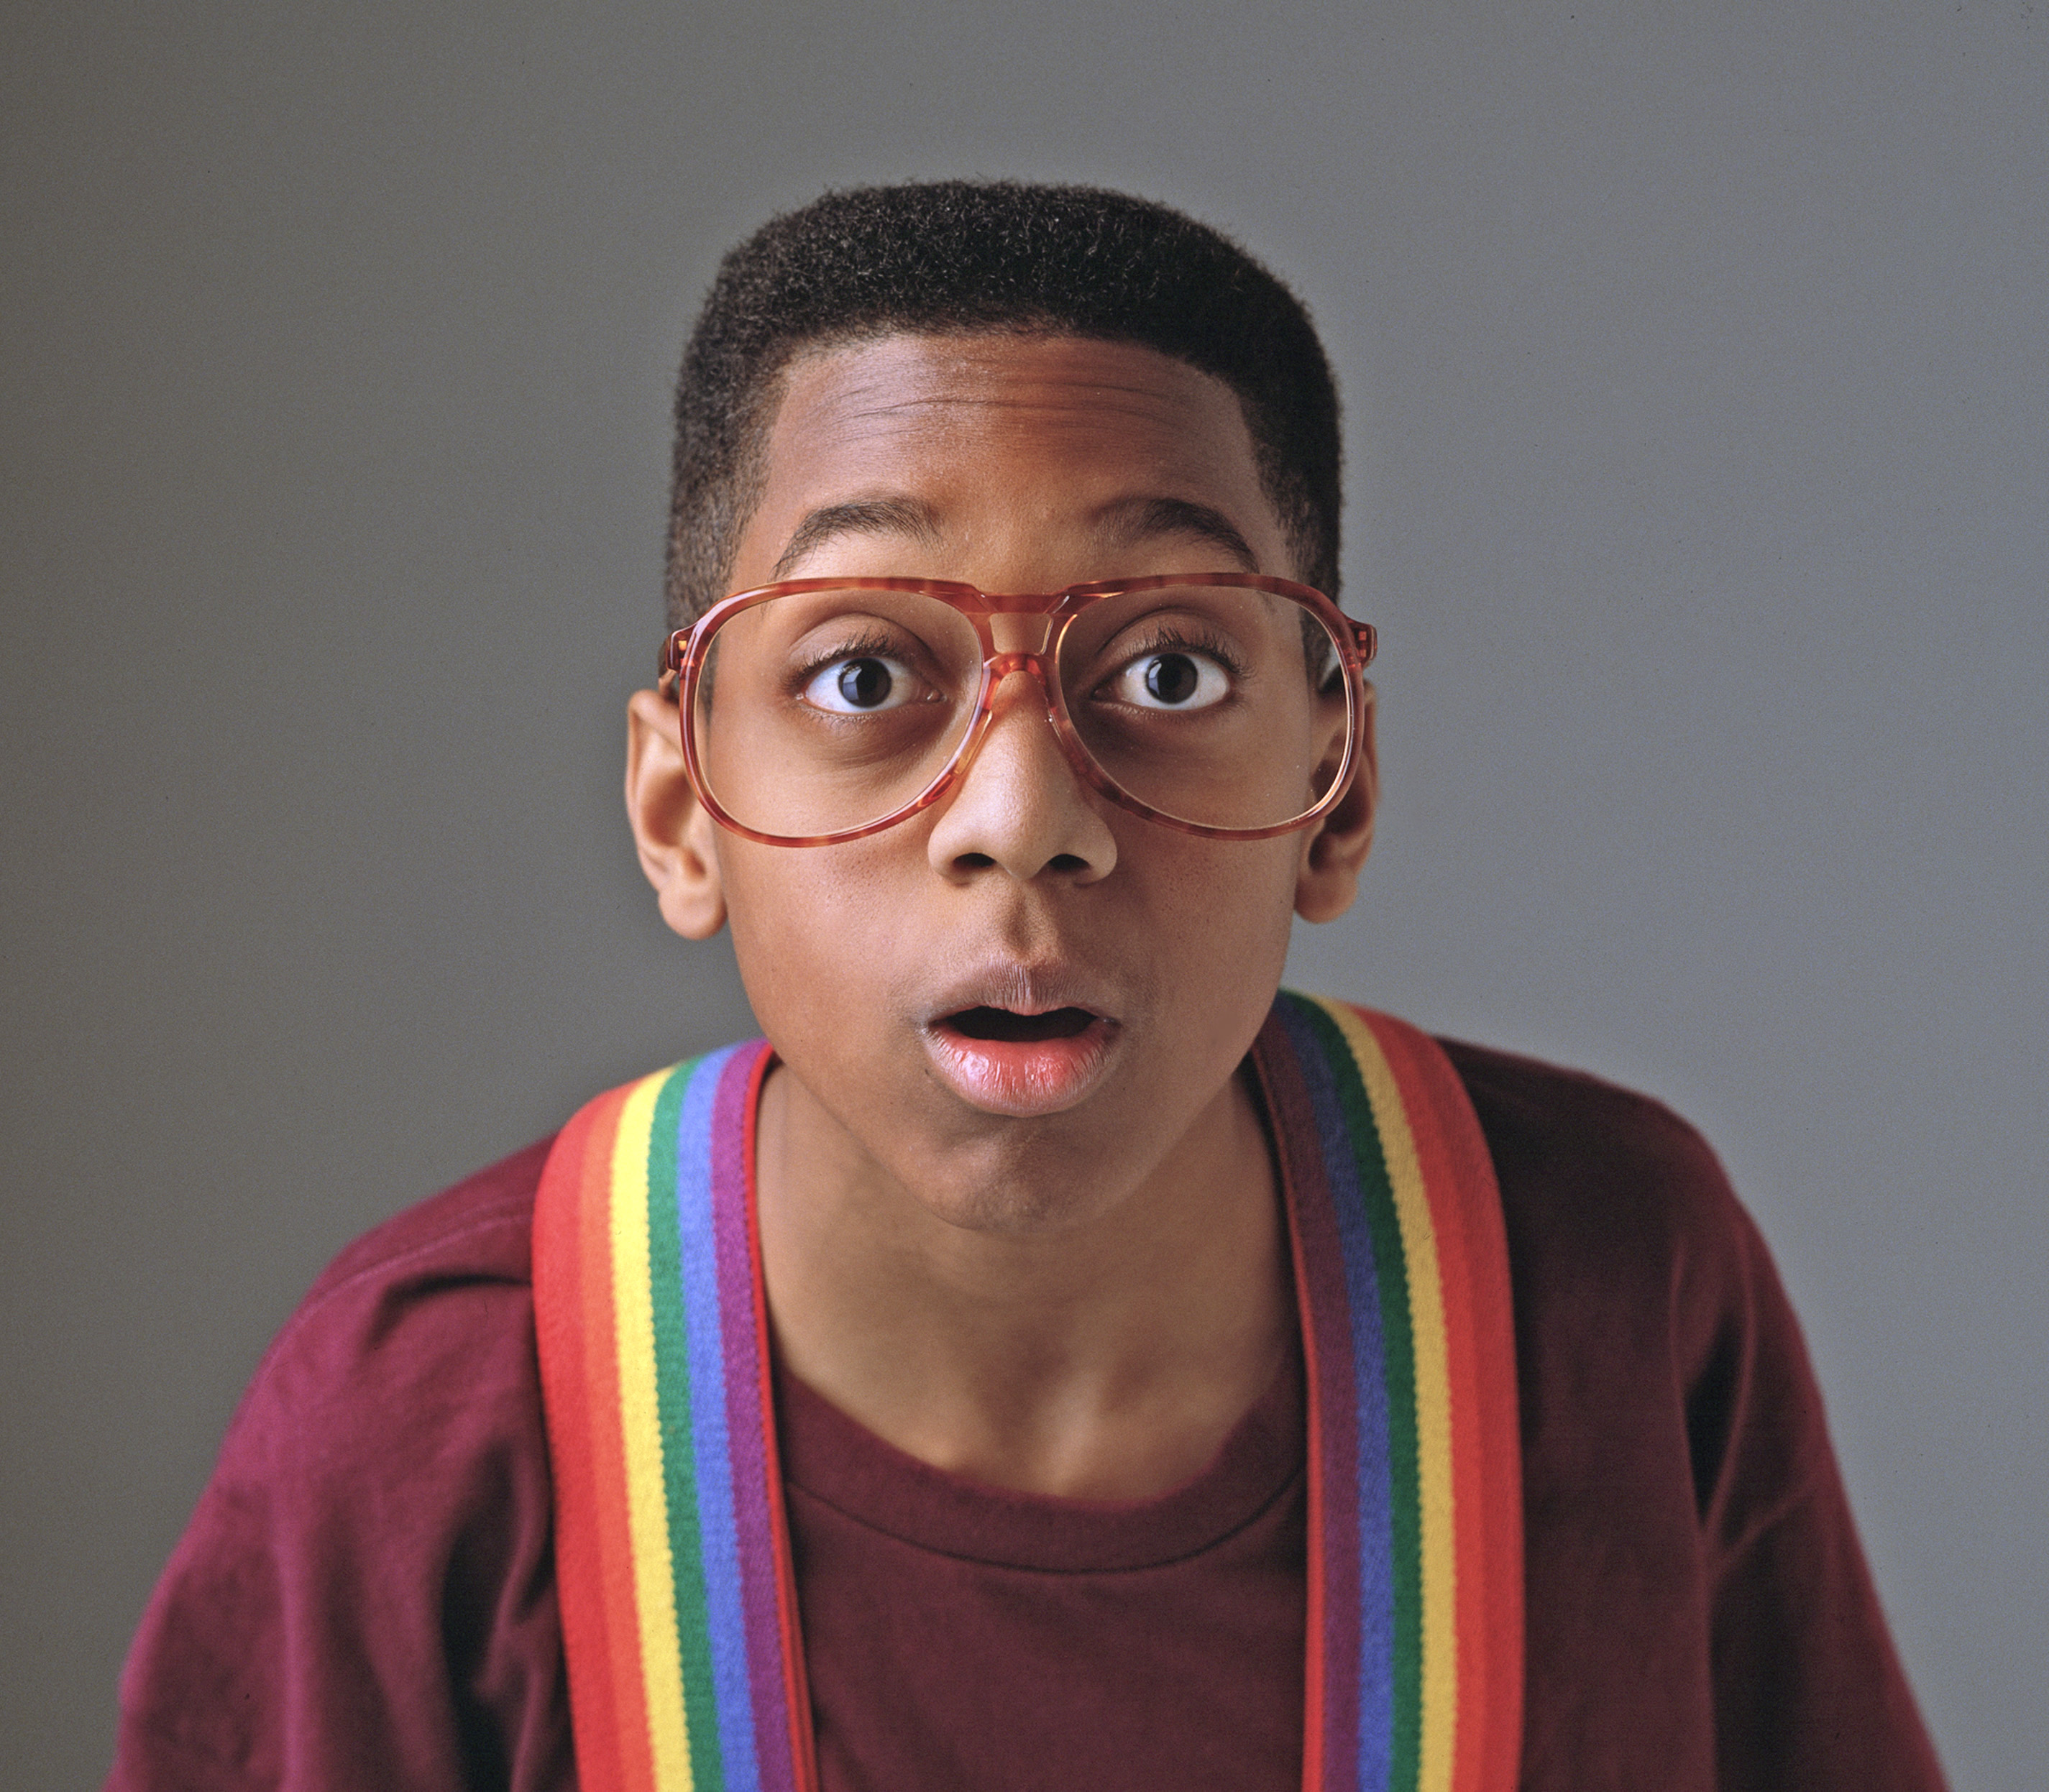 The lovestruck genius of Steve Urkel   CNN Video 2850x2493